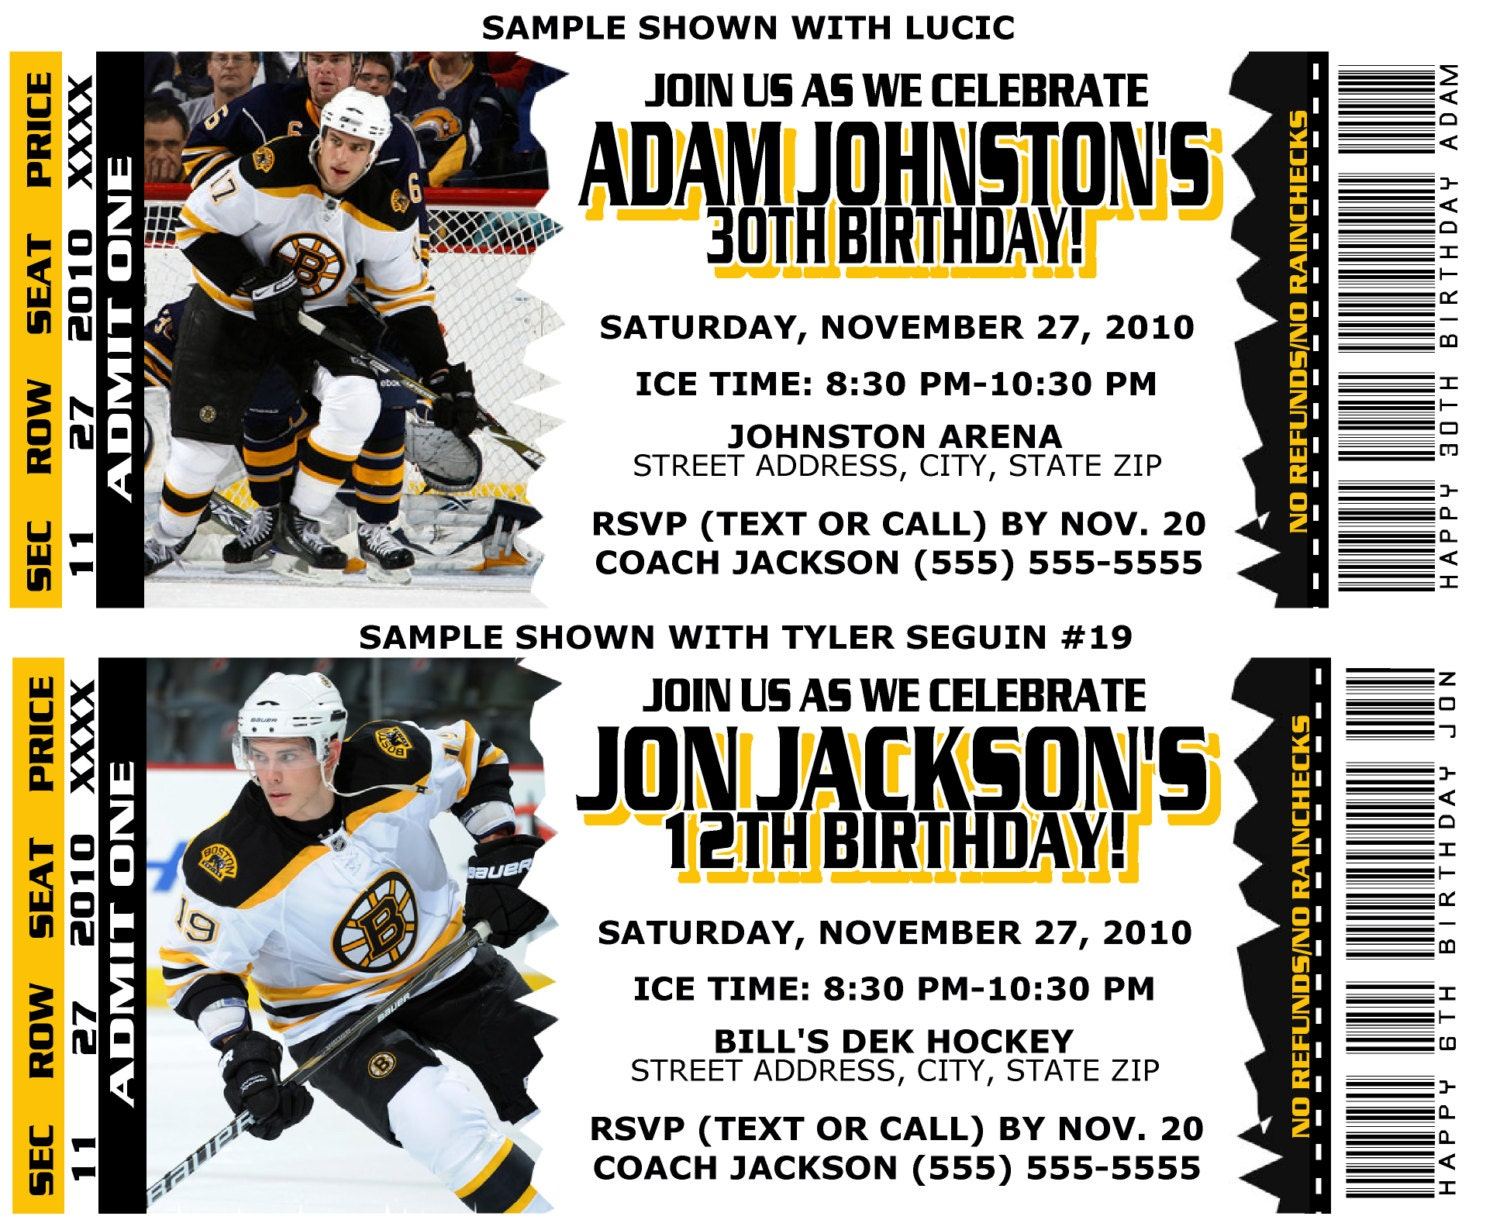 Printable Birthday Party Invitation Card Boston Bruins | Etsy